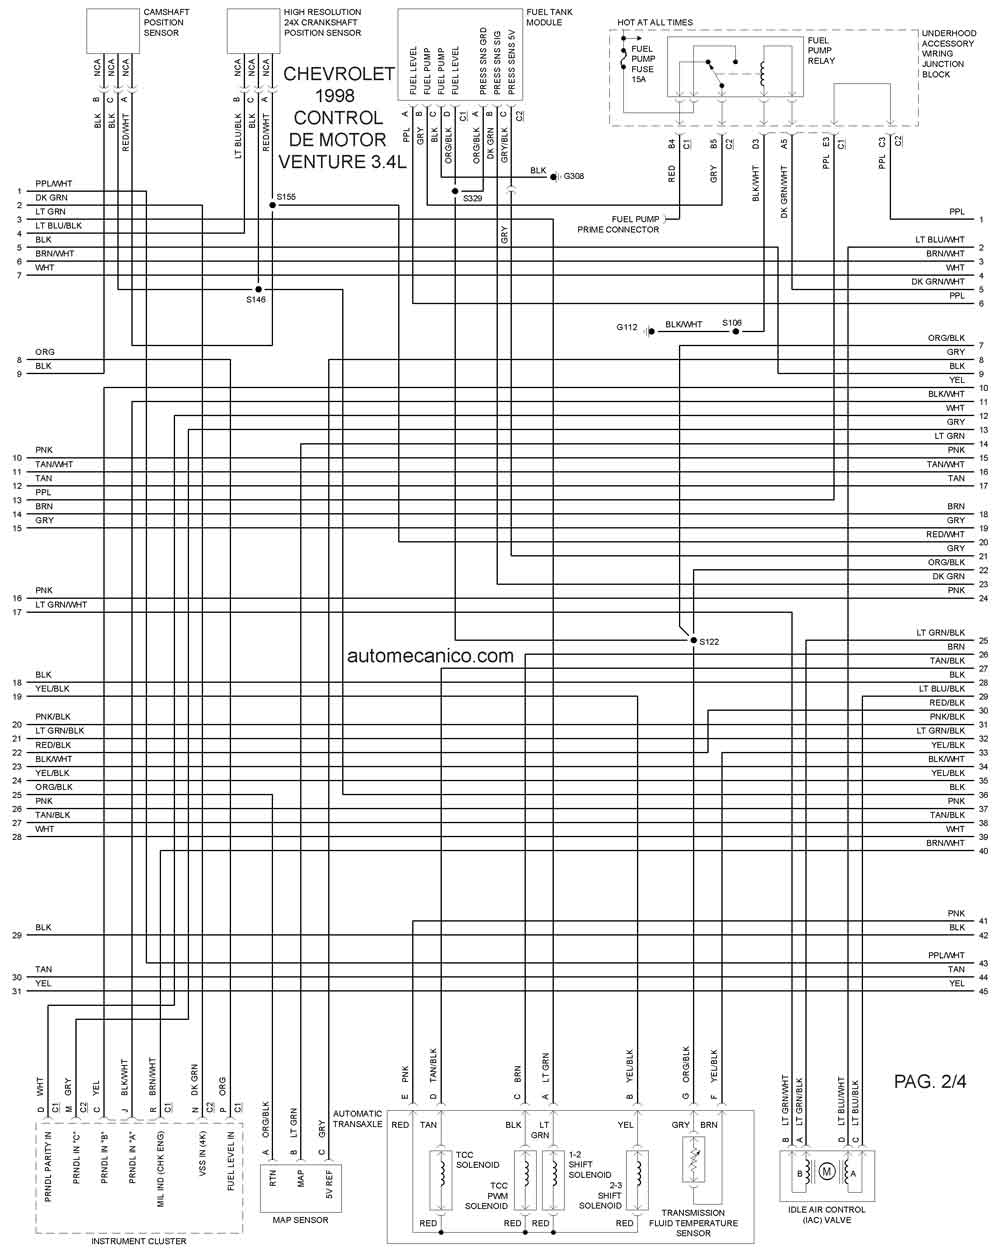 Fuse Box Diagram 2001 Ford Explorer. Ford. Auto Wiring Diagram